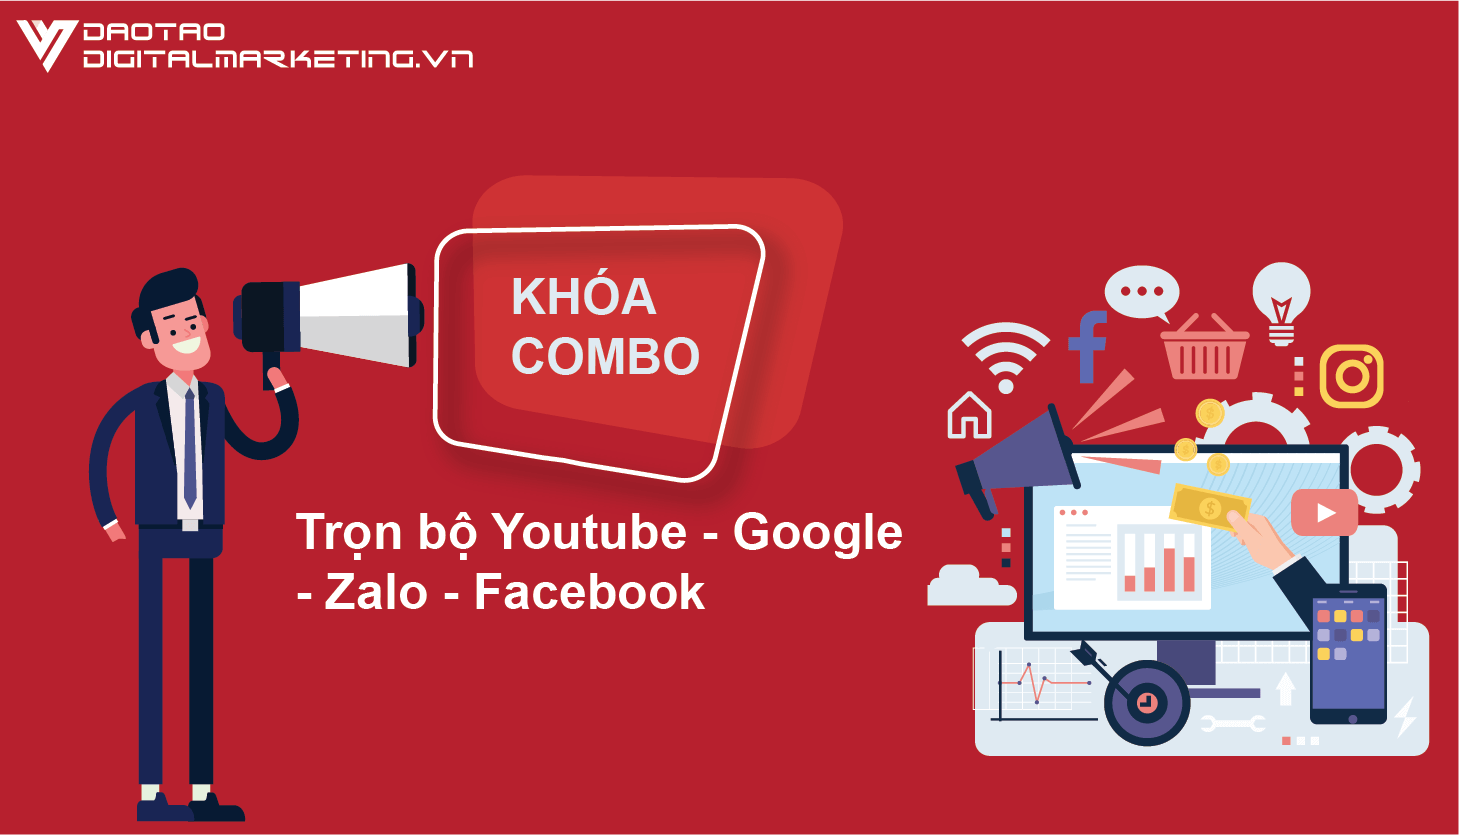 Combo-khoa-hoc-trung-tam-dao-tao-digital-marketing